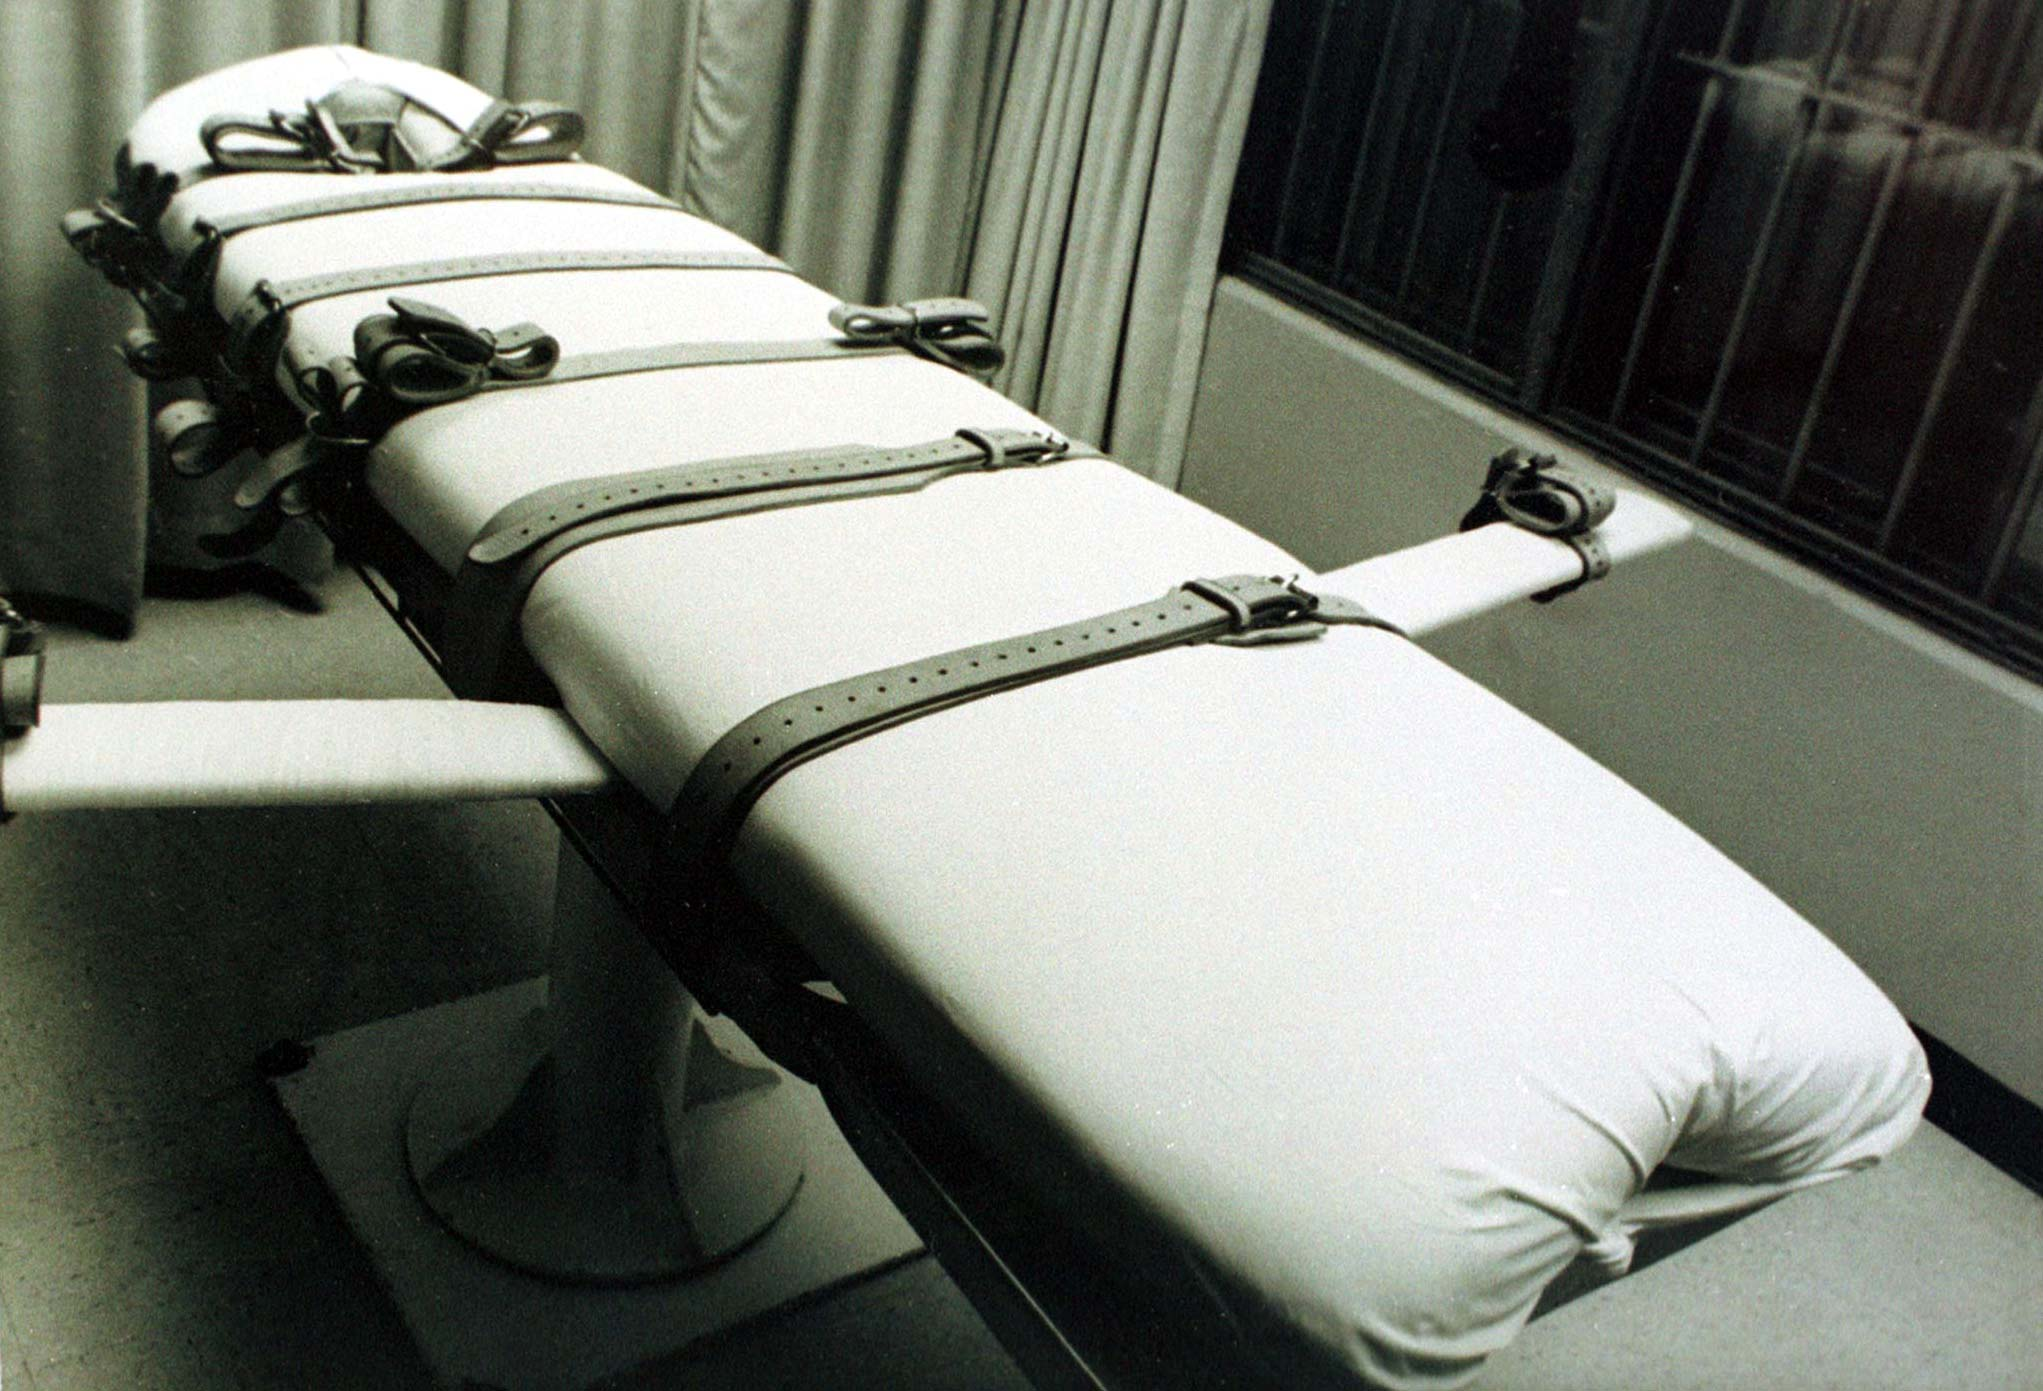 The execution gurney in the Walls Unit in Huntsville, Texas has seen more inmates executed by lethal injection than almost all of the other states combined.